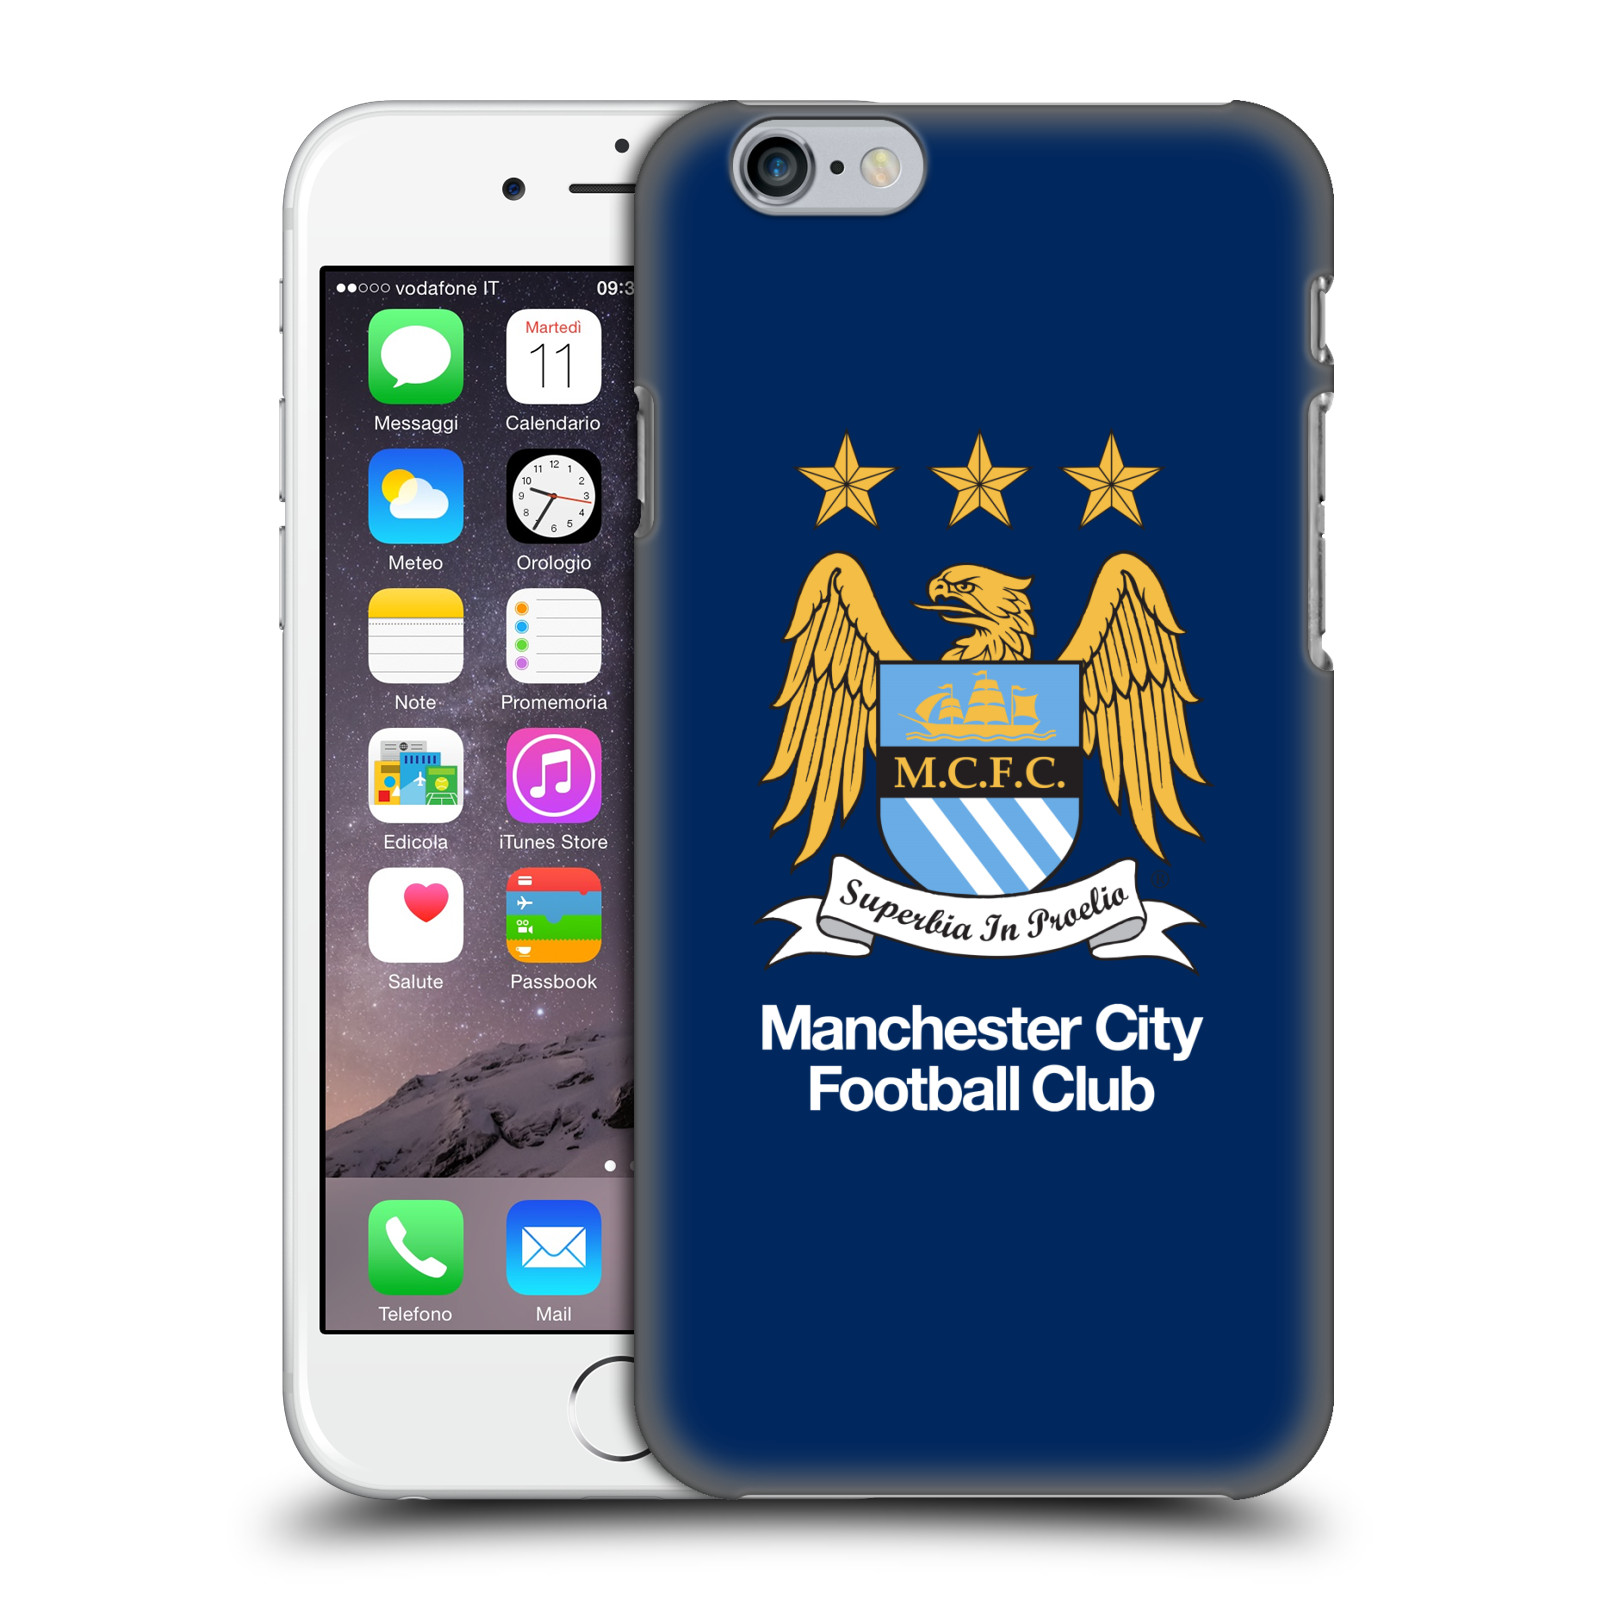 Manchester City FC MCFC Crest-Full Colour Obsidian Blue